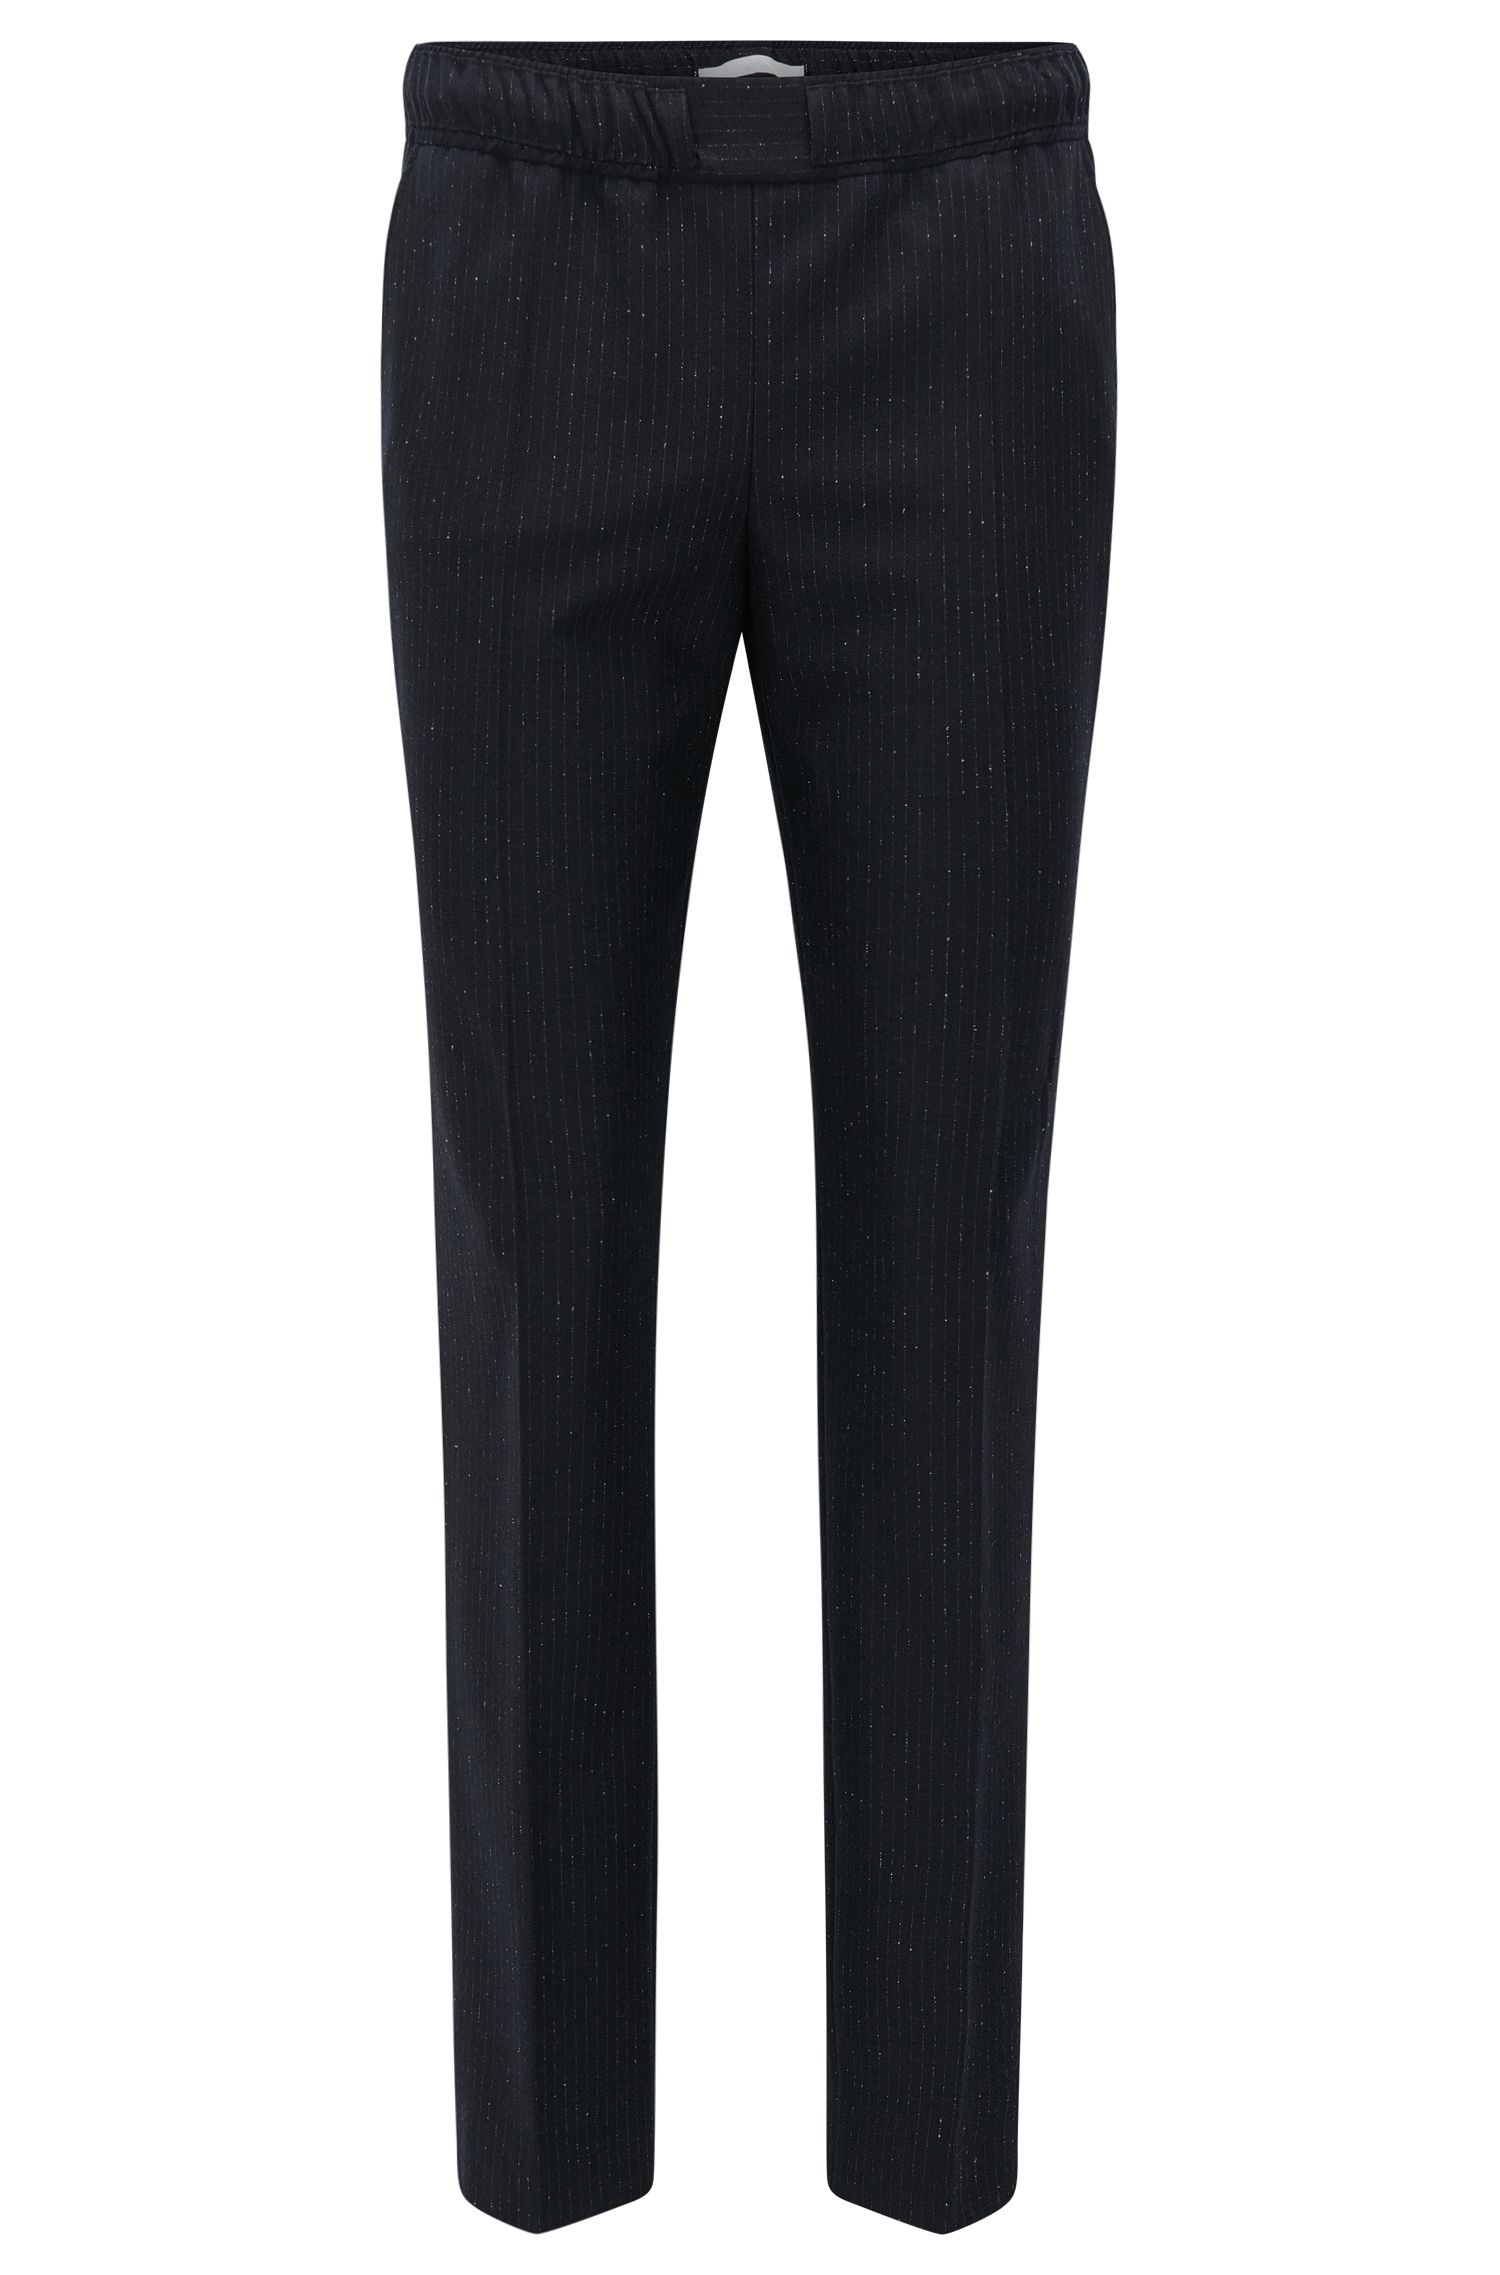 Relaxed-fit trousers in a wool mix